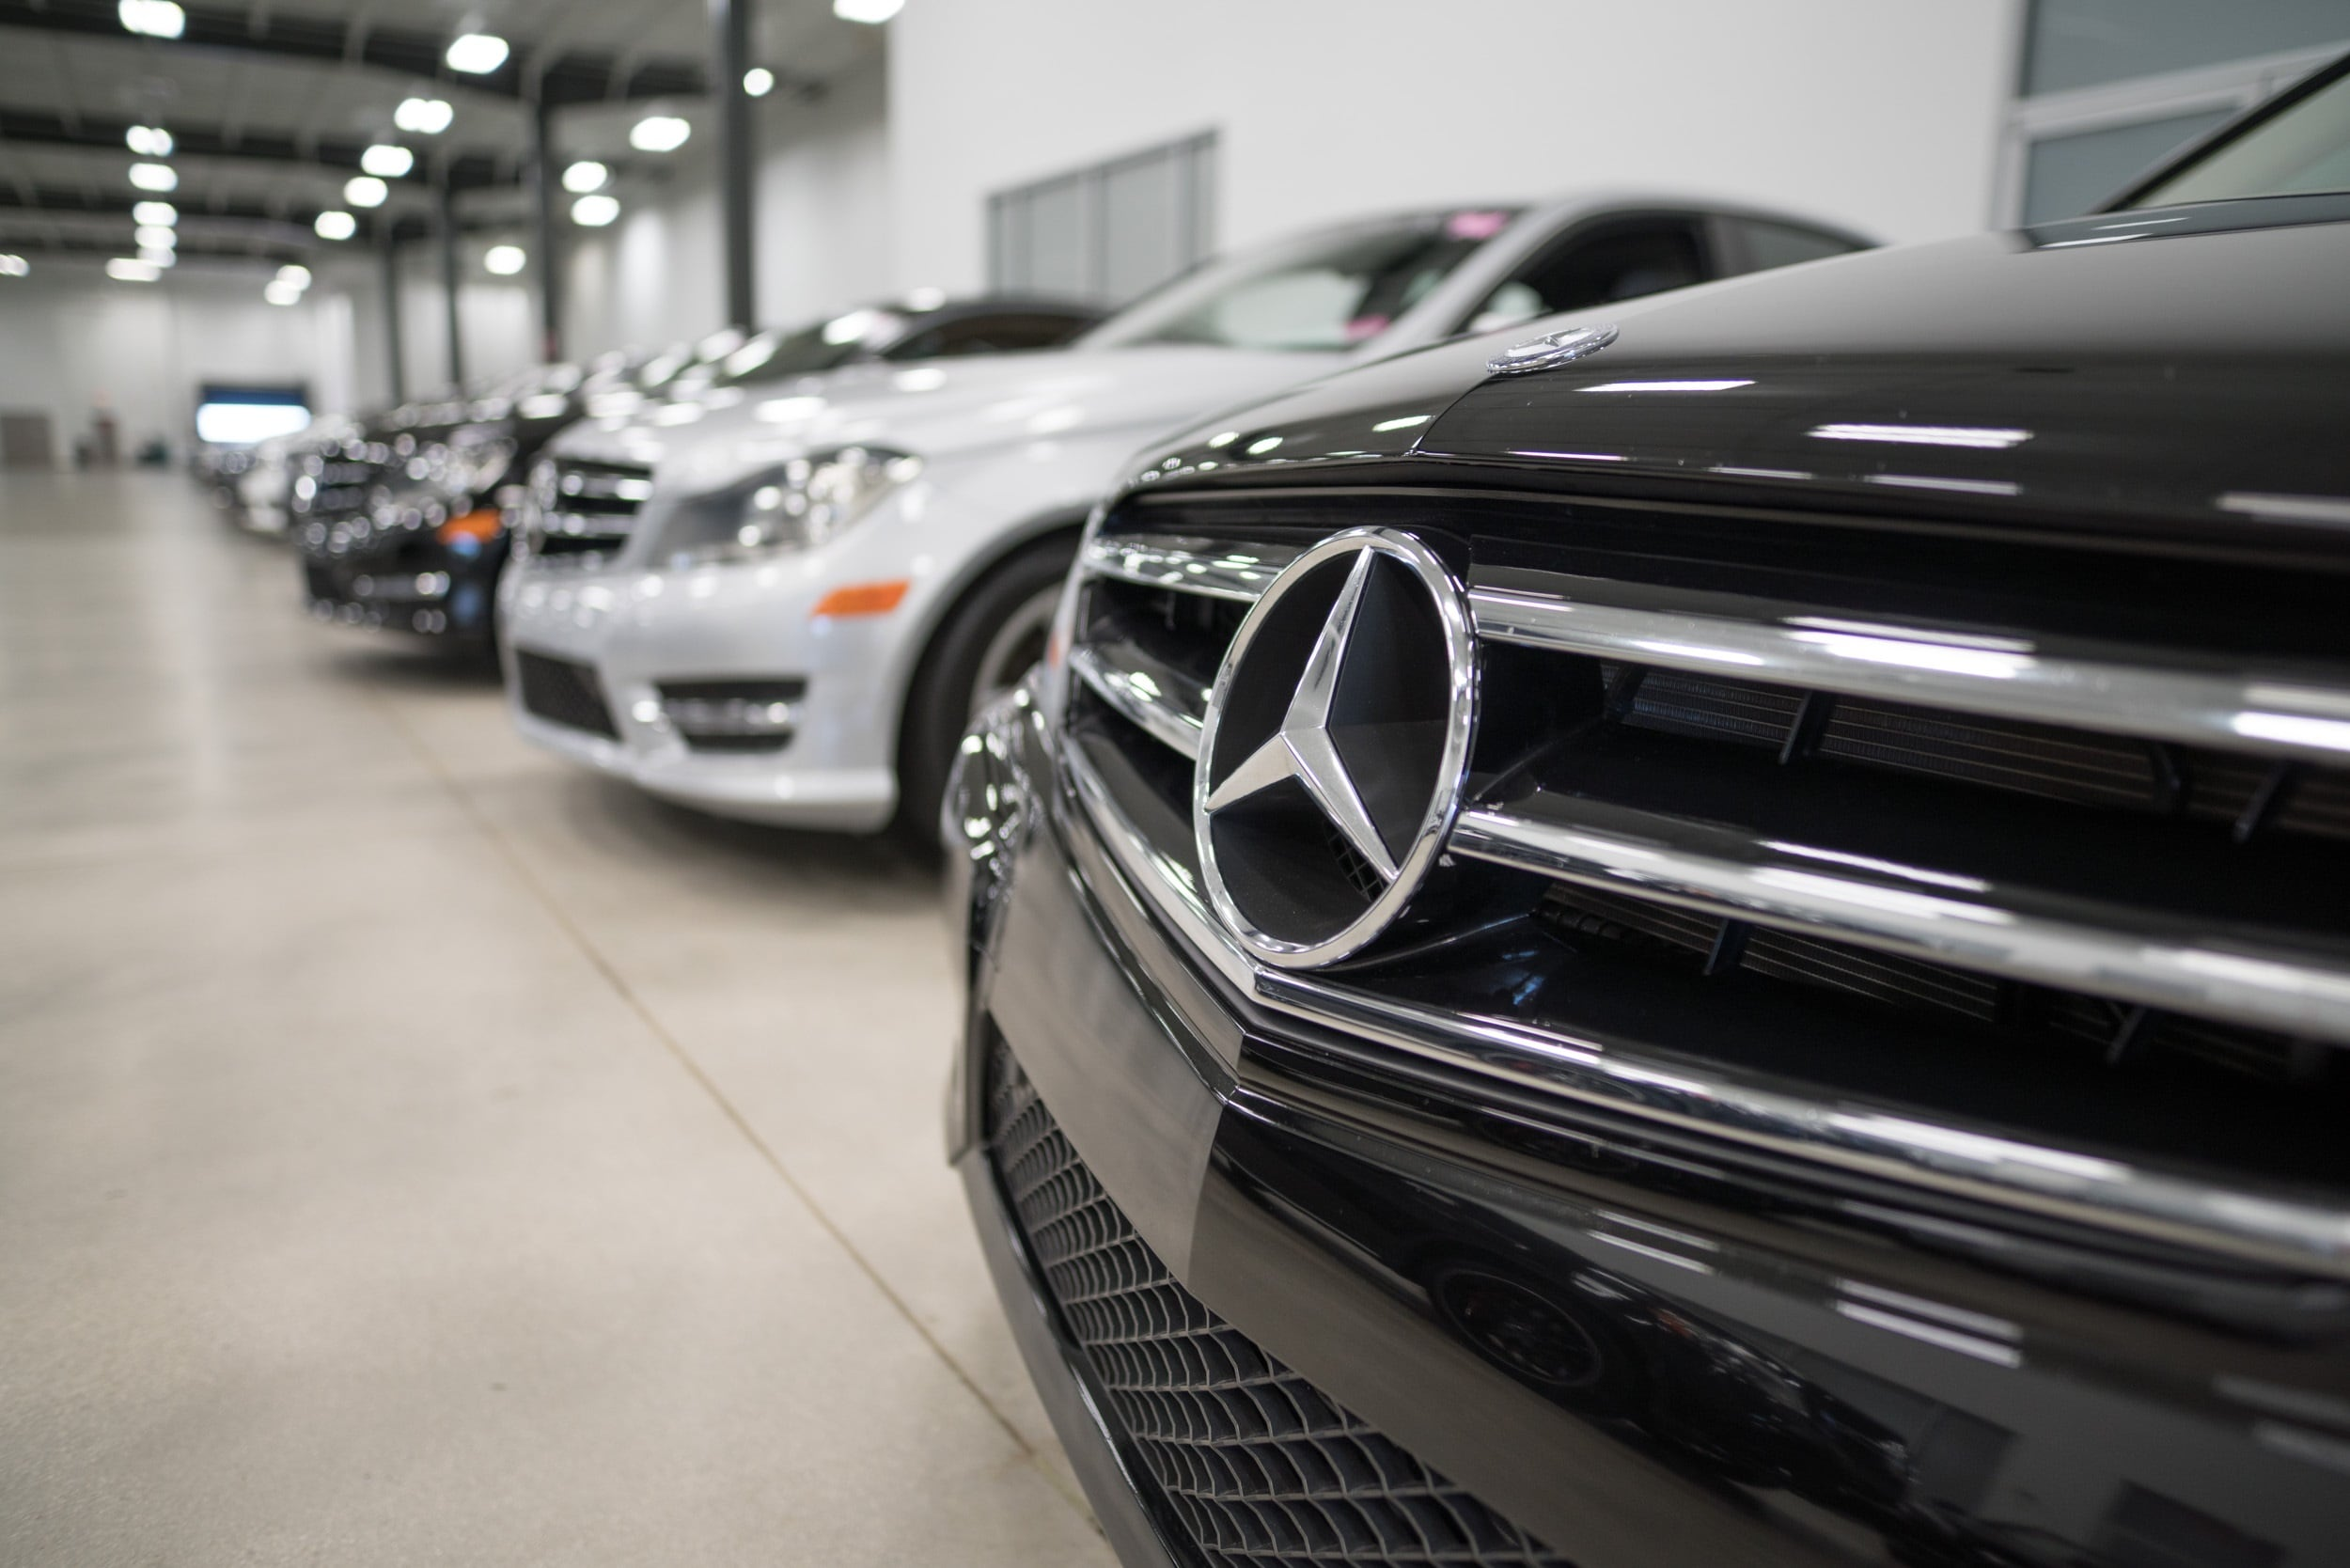 Mercedes benz dealership near me fort lauderdale fl for Mercedes benz dealer northern blvd